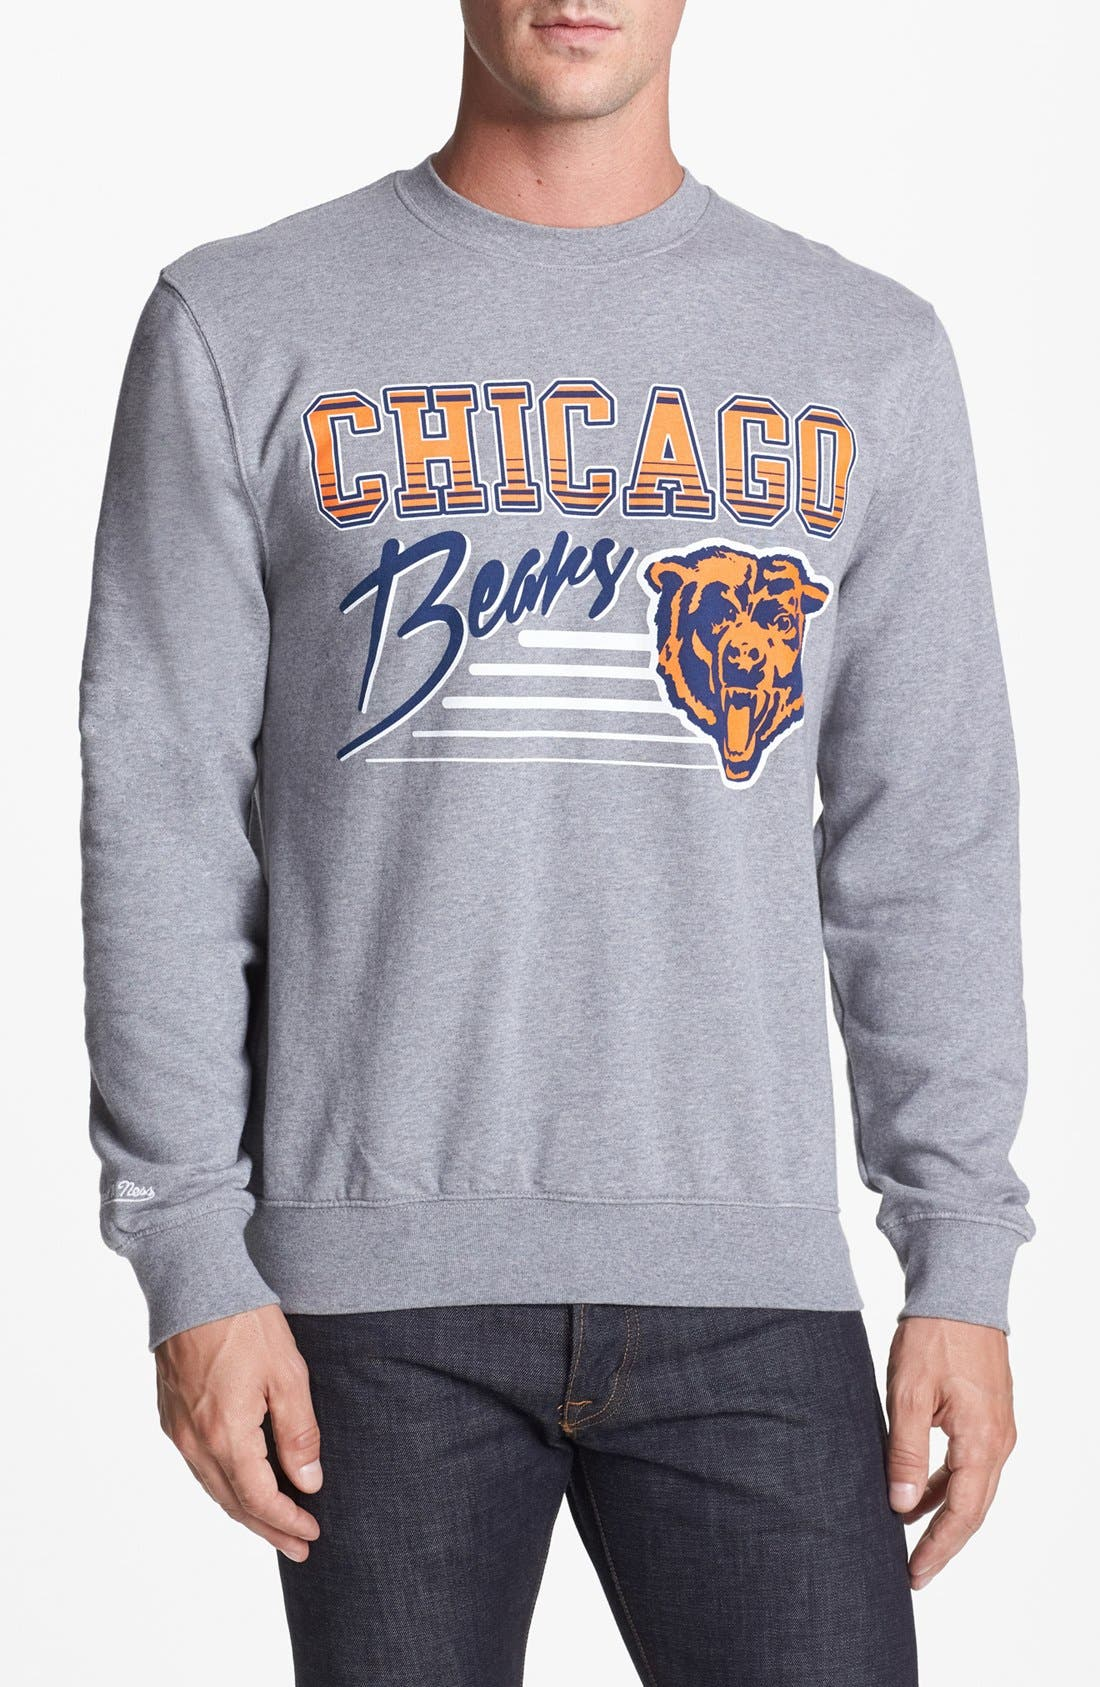 Alternate Image 1 Selected - Mitchell & Ness 'Chicago Bears' Sweatshirt